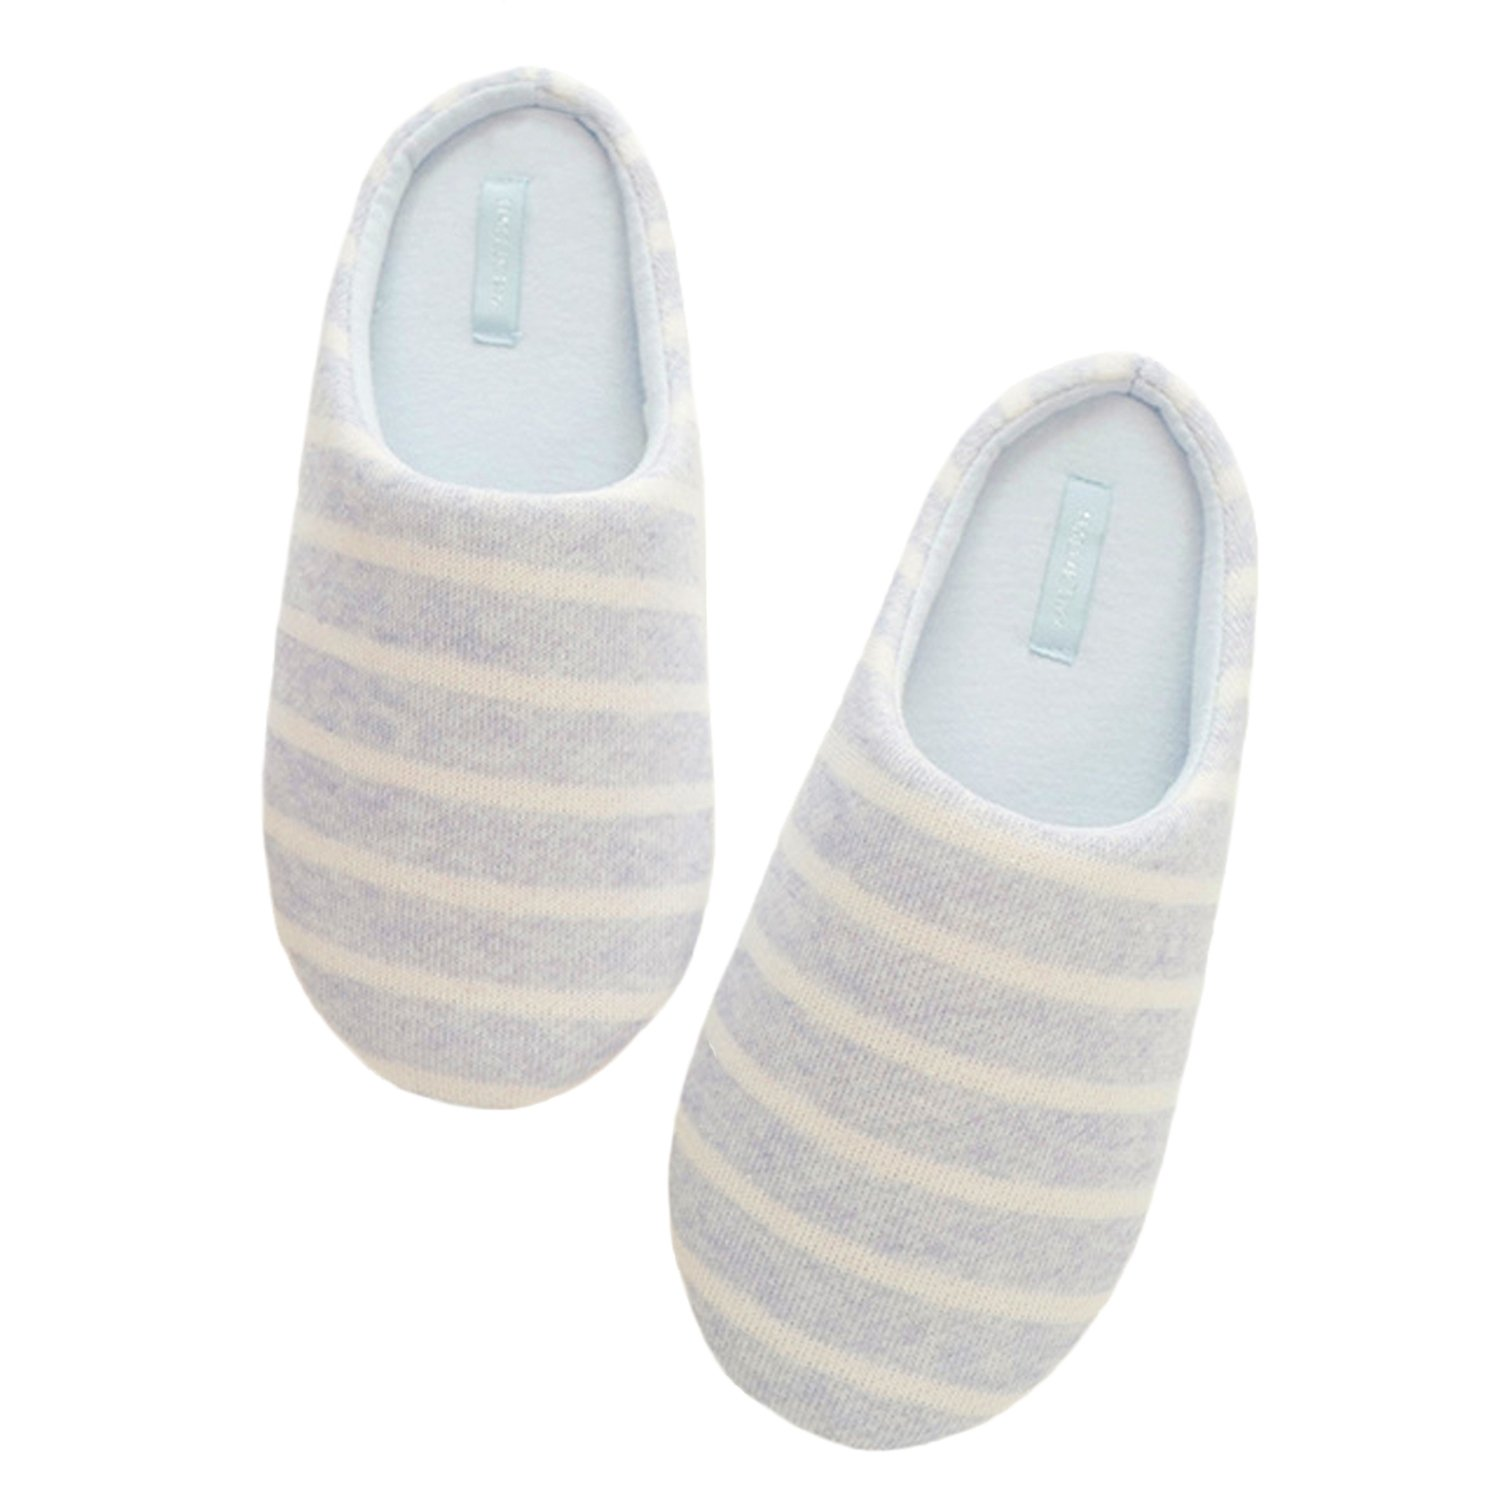 a69ec85fd52d bestfur Women s Concise Stripe Soft Warm Comfortable Mute Home Slippers  85%OFF